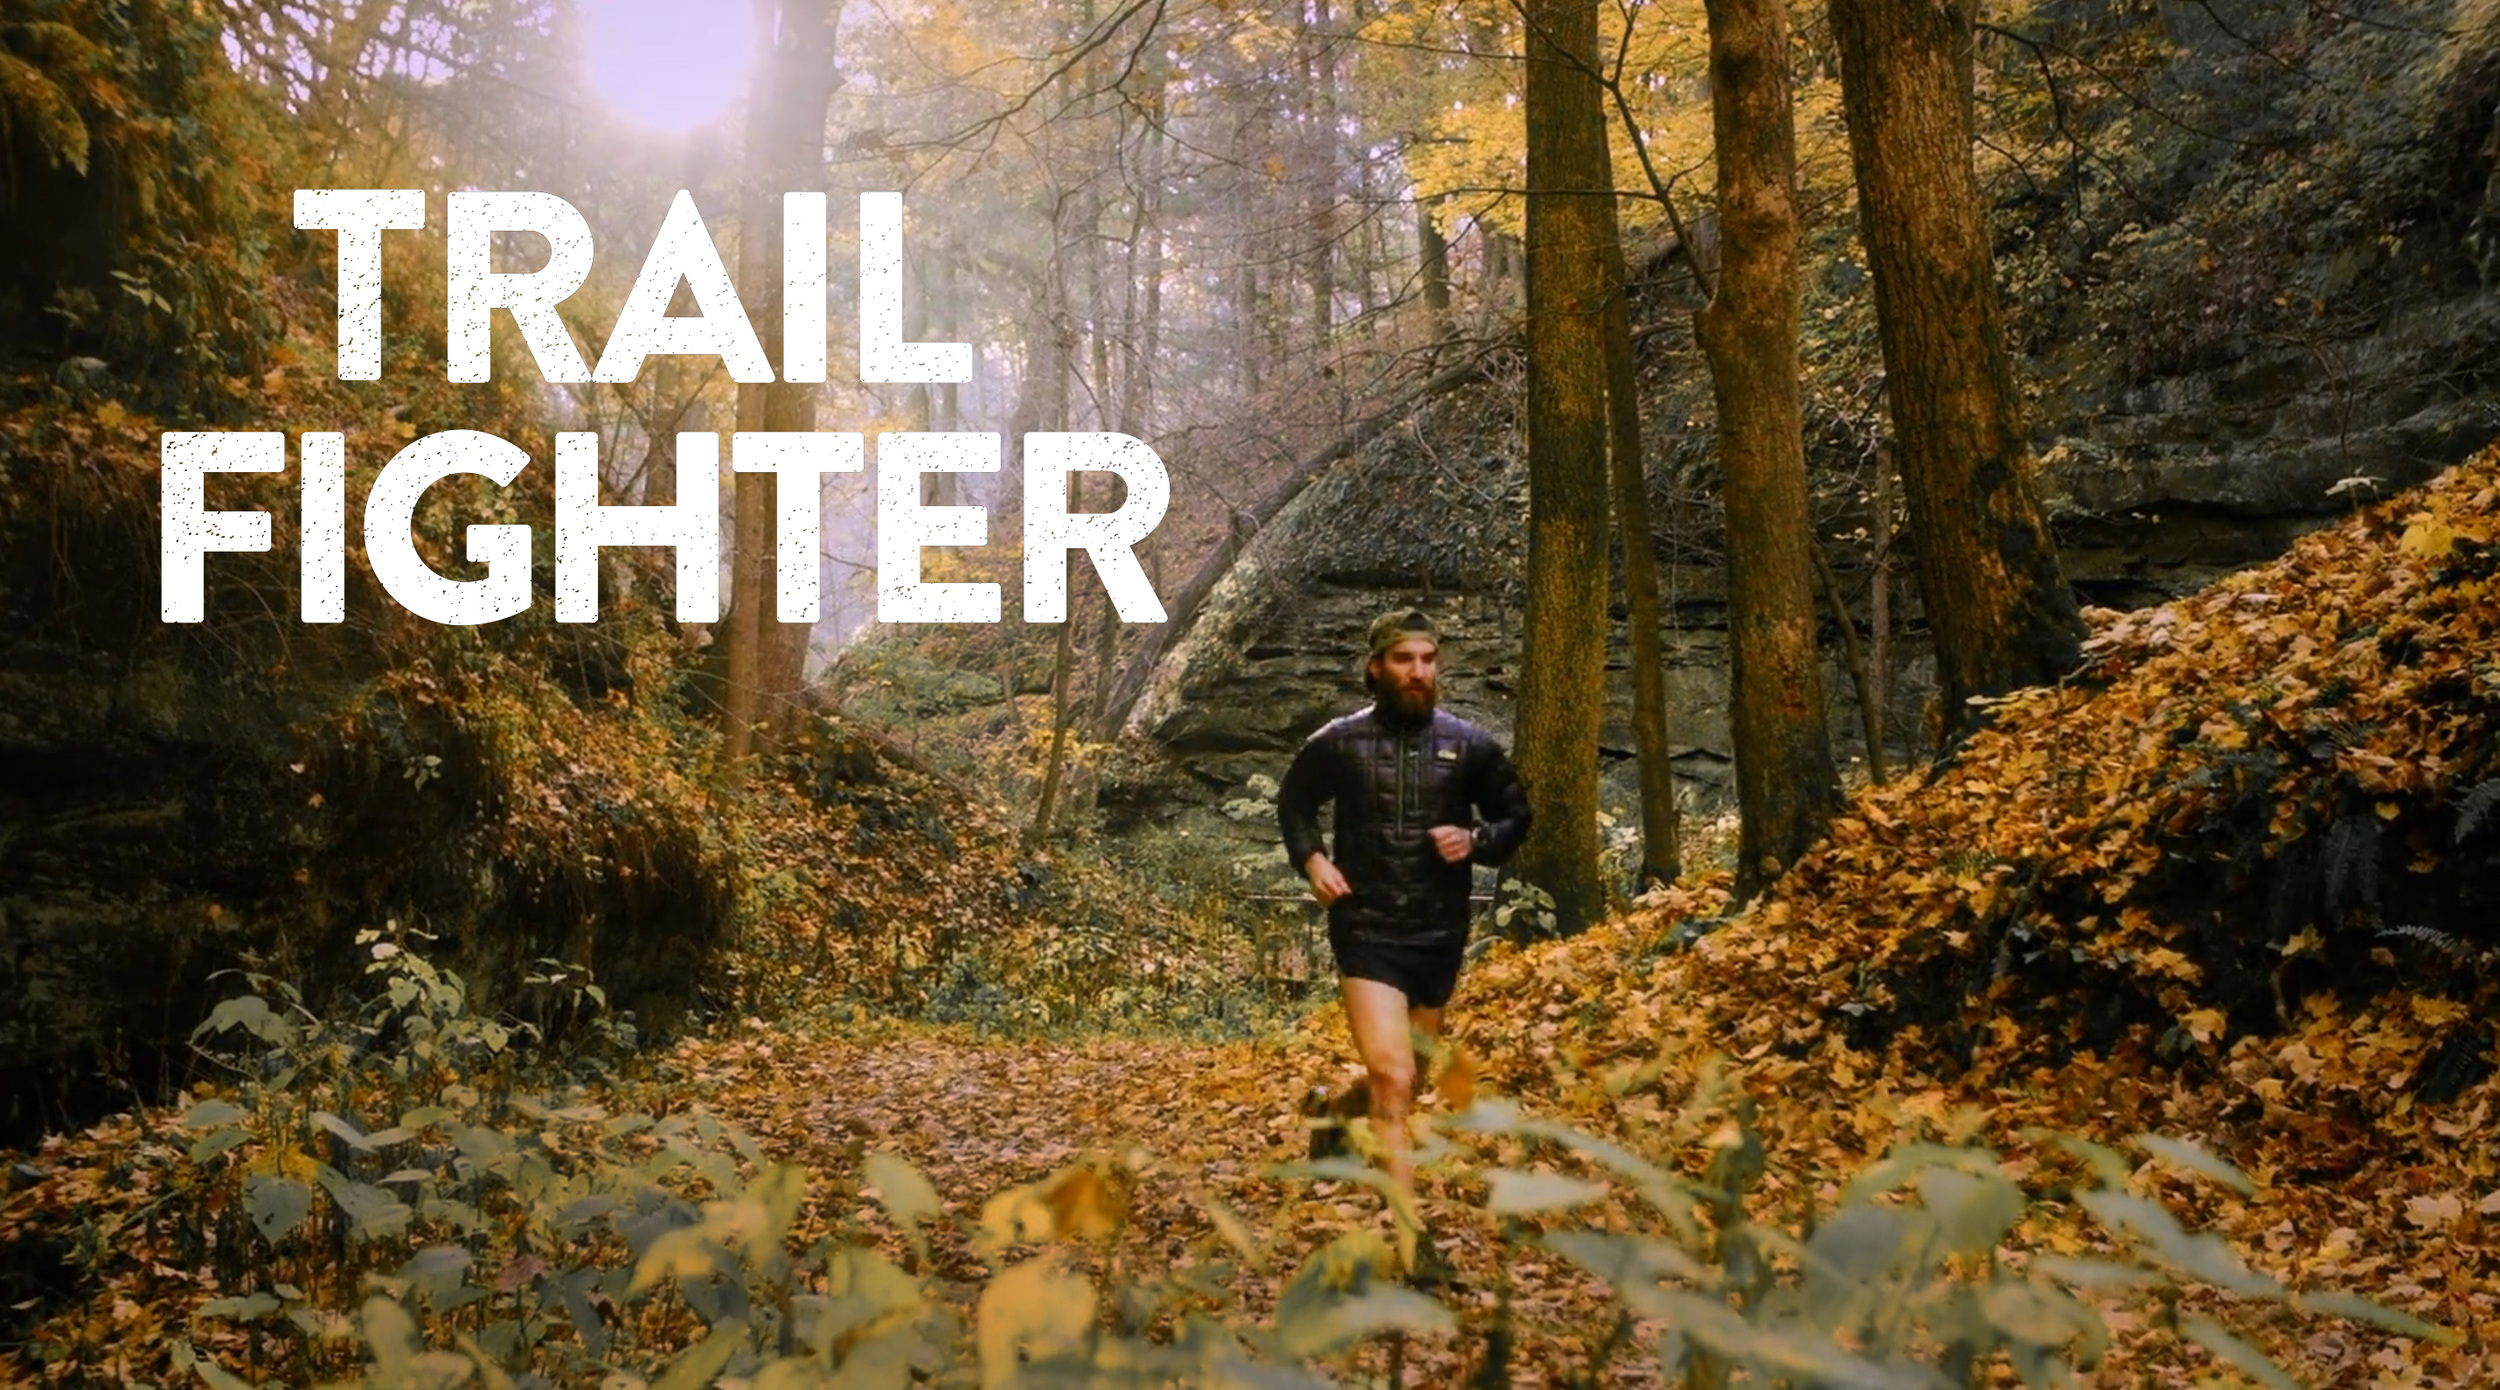 TrailFigter_Front02.jpg